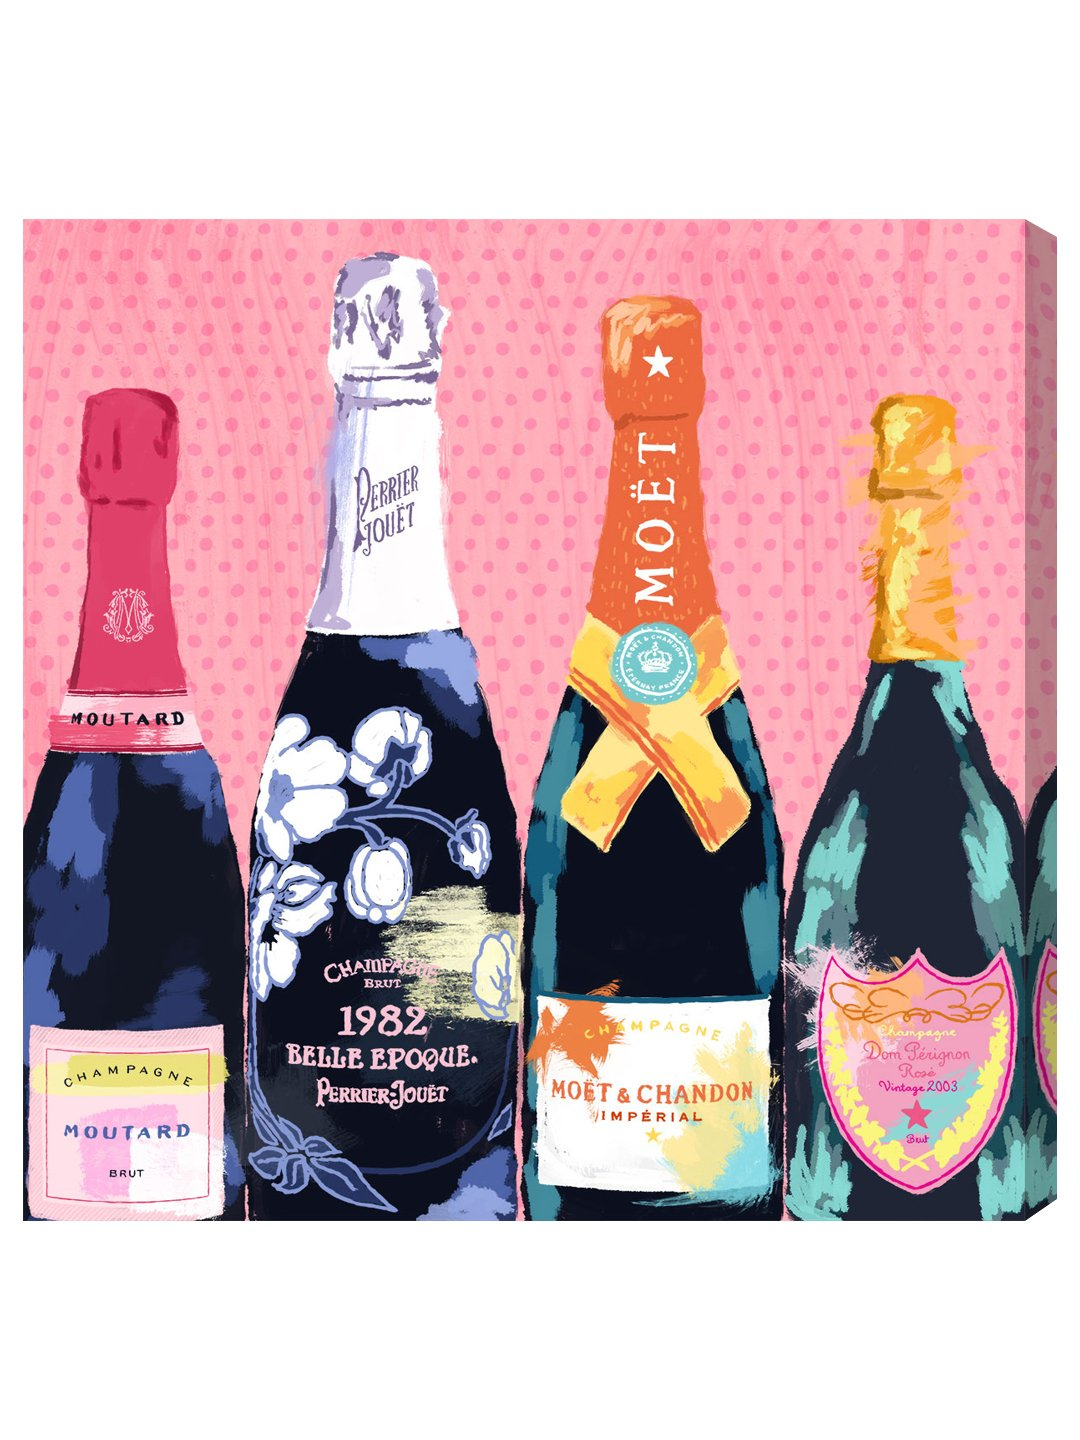 Amazon.com Pass The Bottle!u0027 Contemporary Canvas Wall Art Print for Home Decor and Office. The Fashion Wall Decor Collection by The Oliver Gal Artist Co.  sc 1 st  Amazon.com & Amazon.com: Pass The Bottle!u0027 Contemporary Canvas Wall Art Print for ...